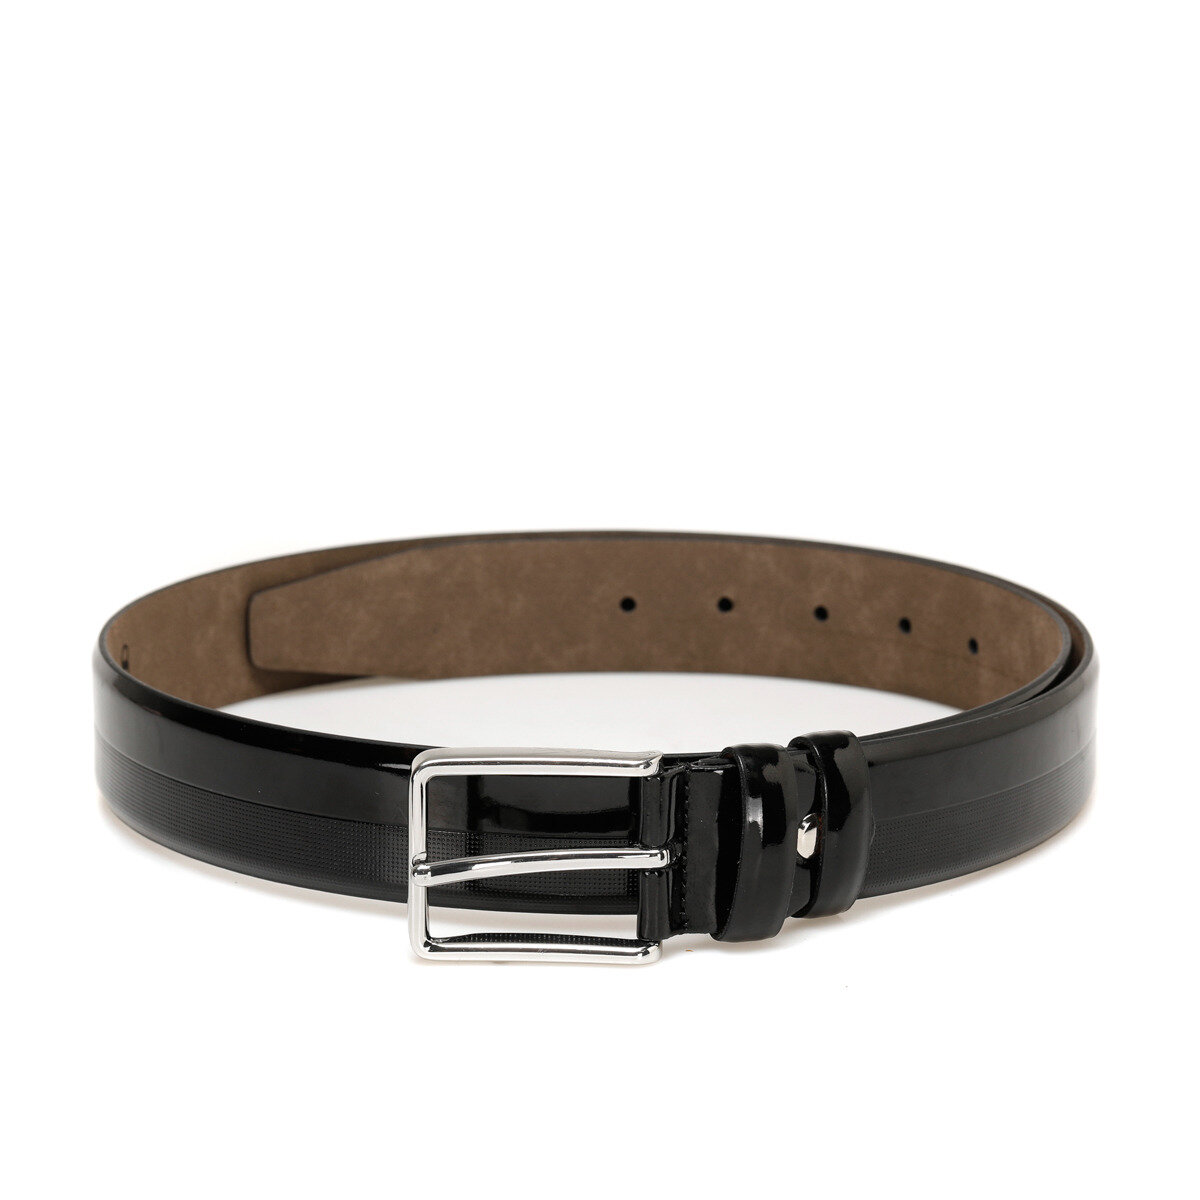 FLO 20M BR CO Black Male Belt Garamond